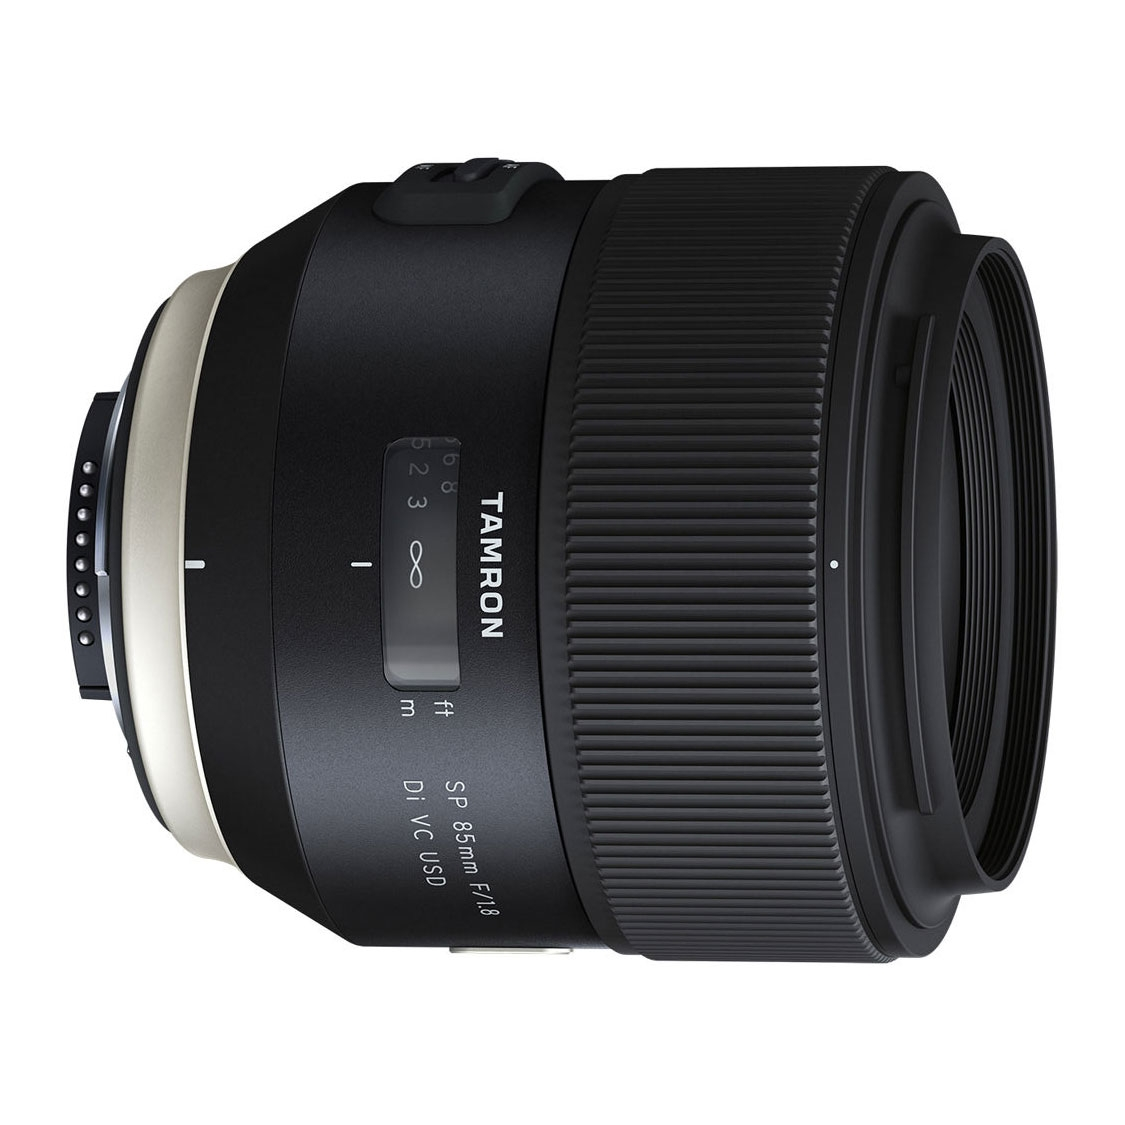 Tamron AF 85mm F1.8 Di VC USD SP Lens for Nikon F-Mount